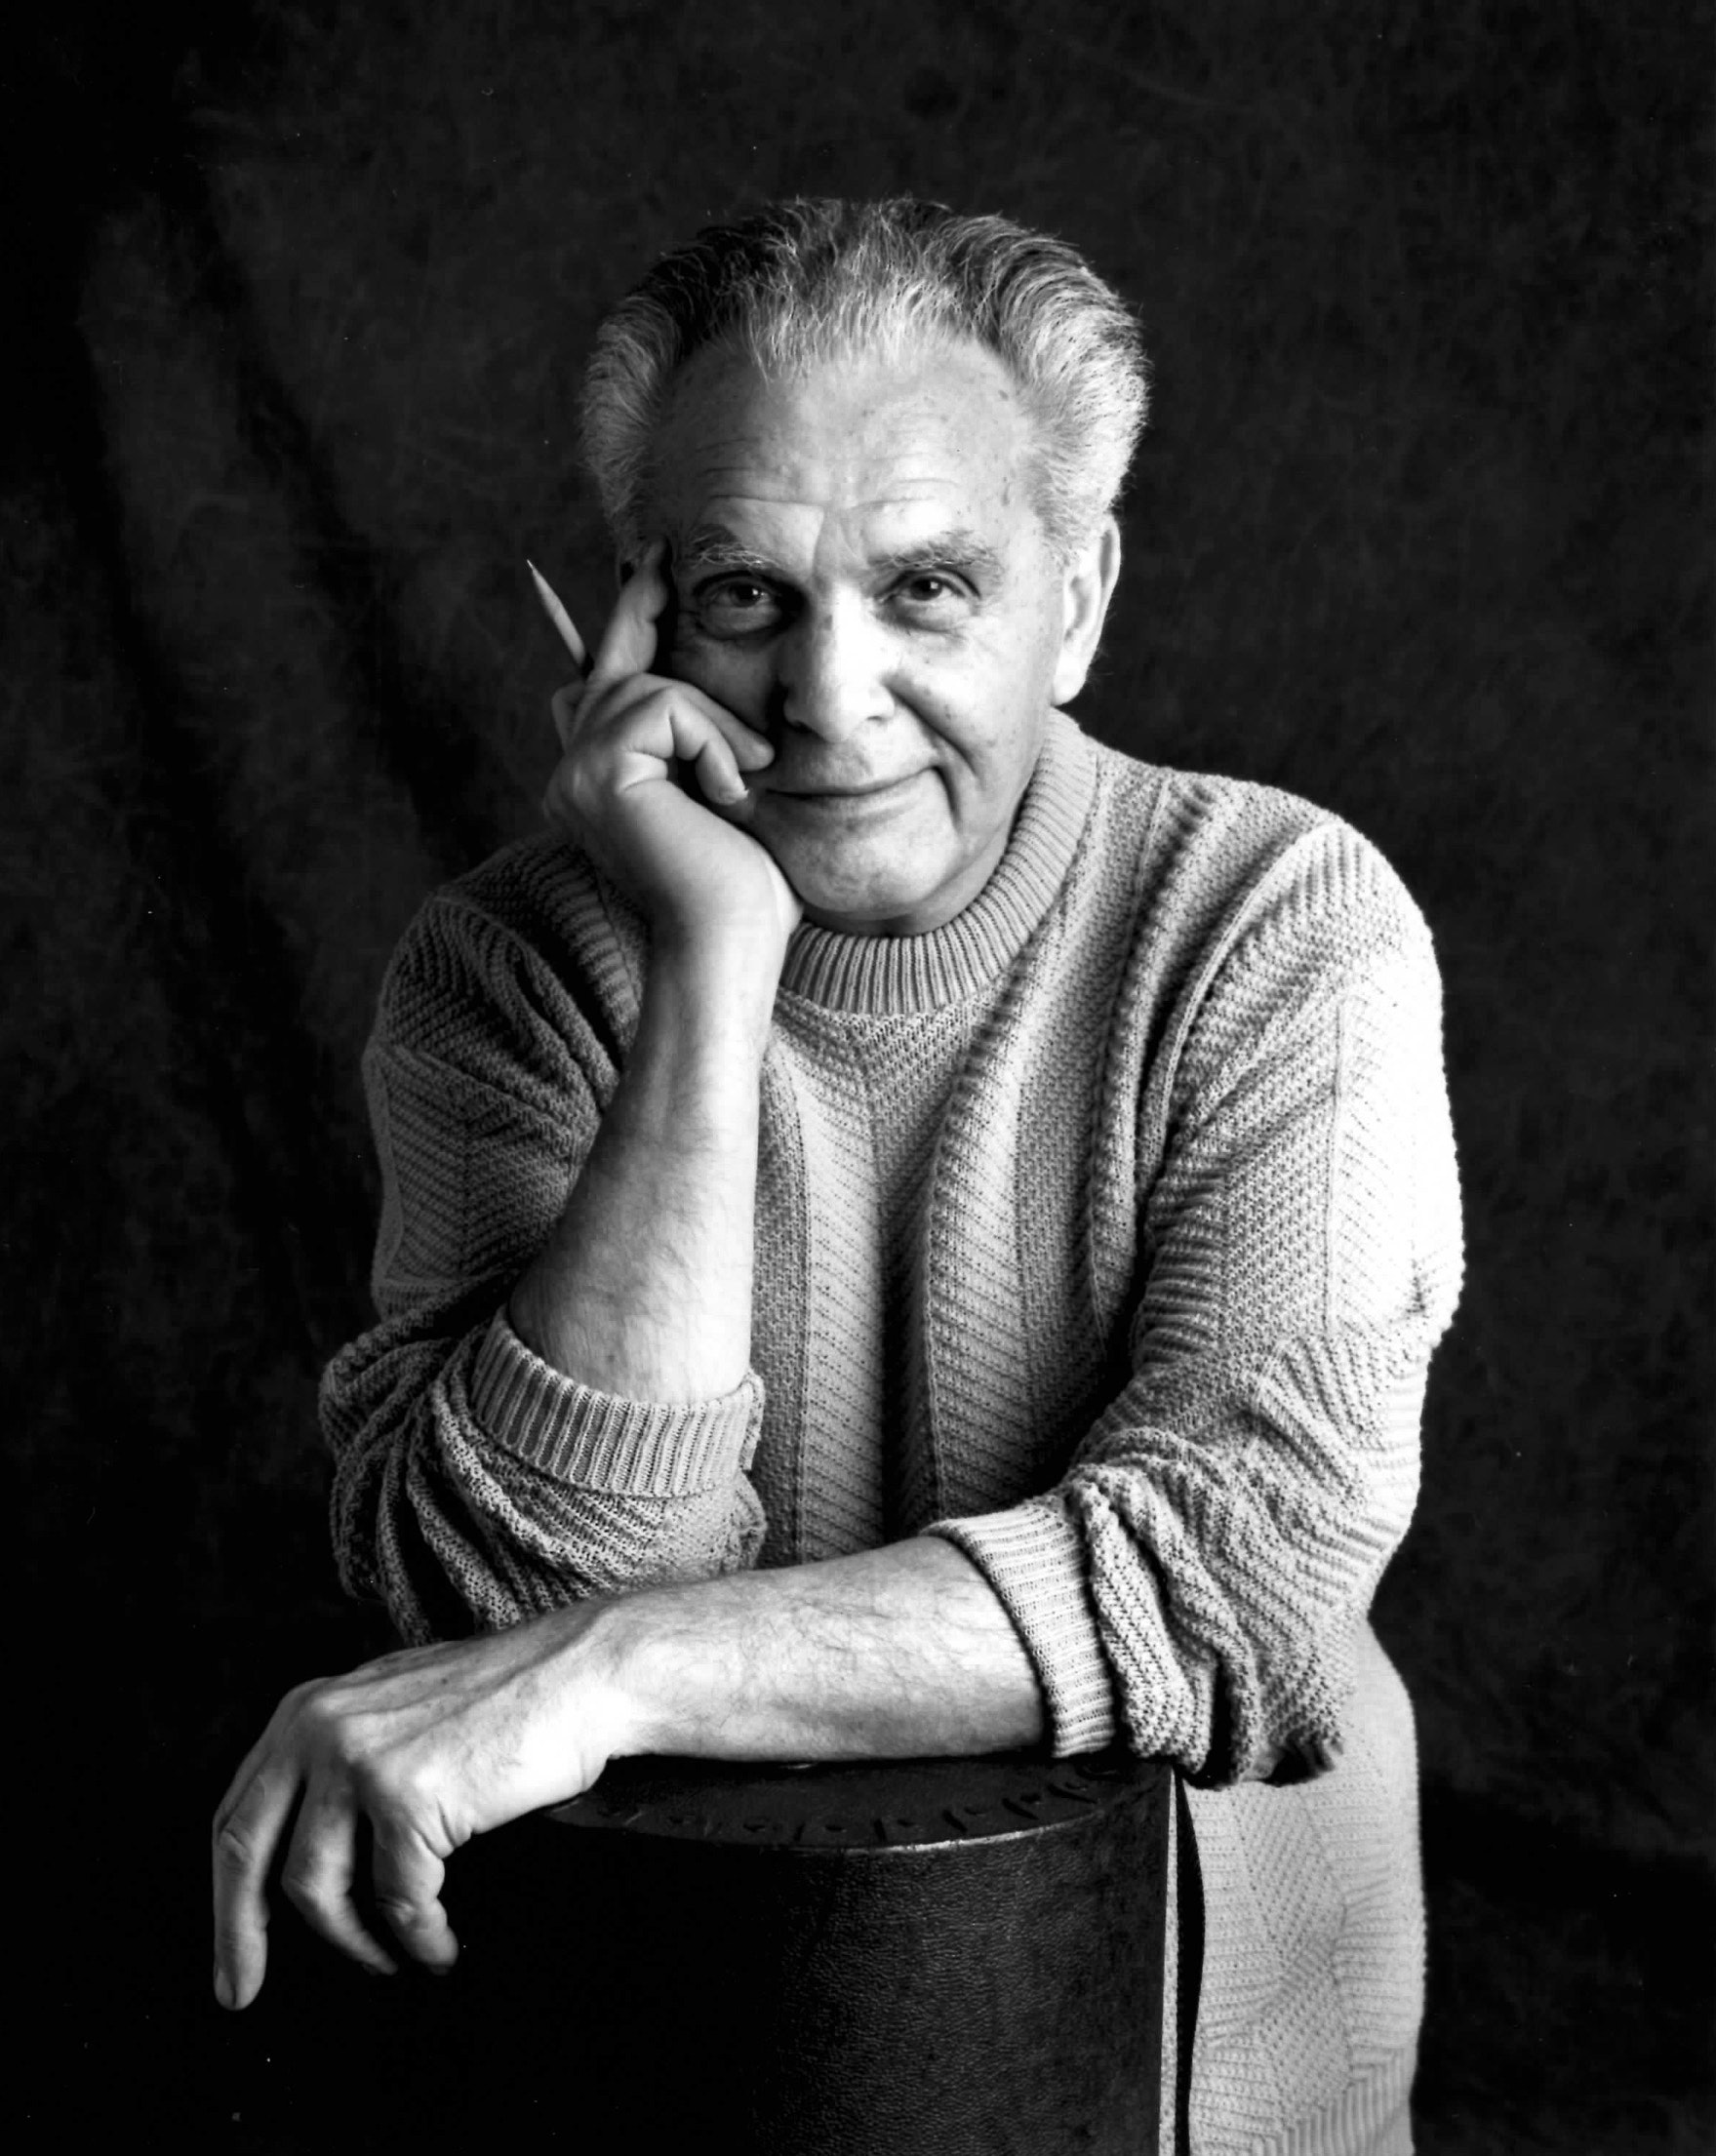 Jack Kirby in 1992. Photo credit: Wikimedia Commons [CC BY-SA 3.0]